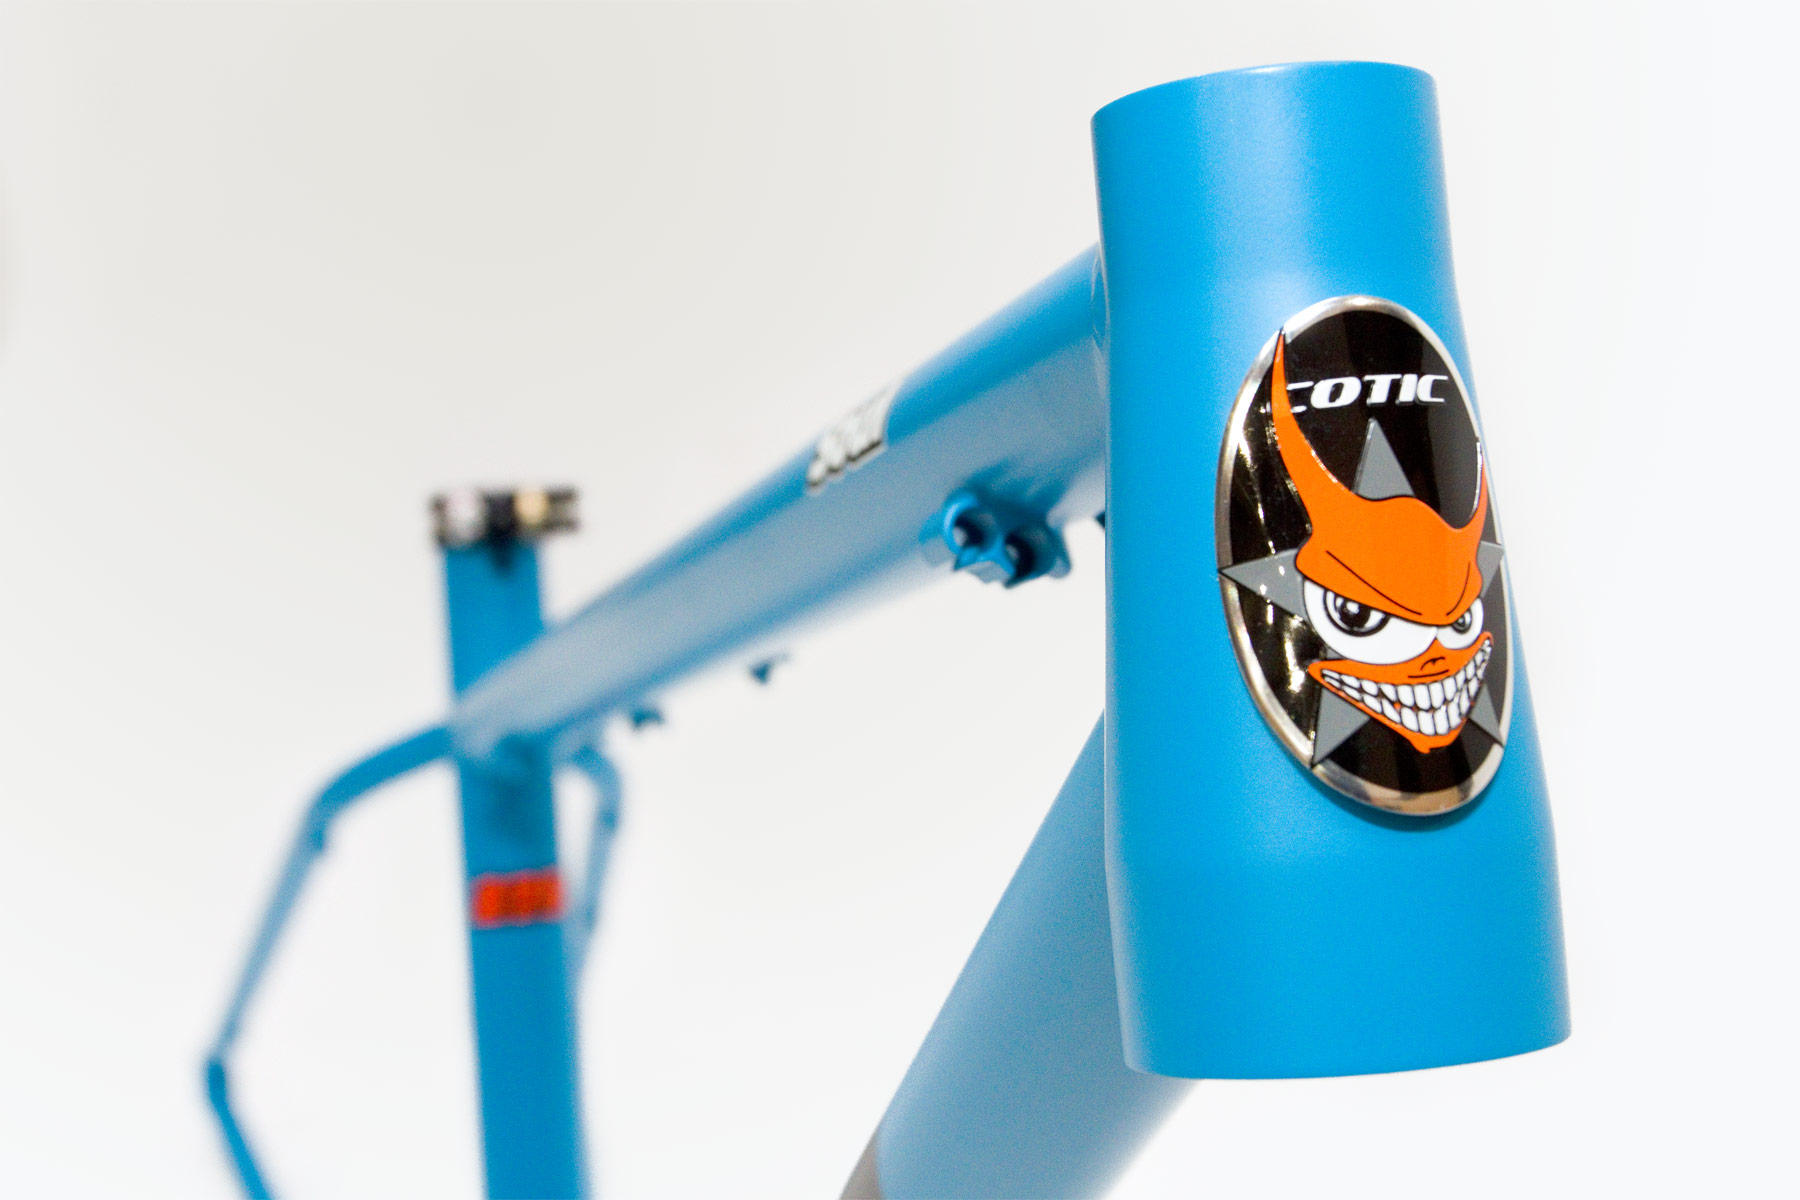 Soul275-tapered-headtube Frame Cotic